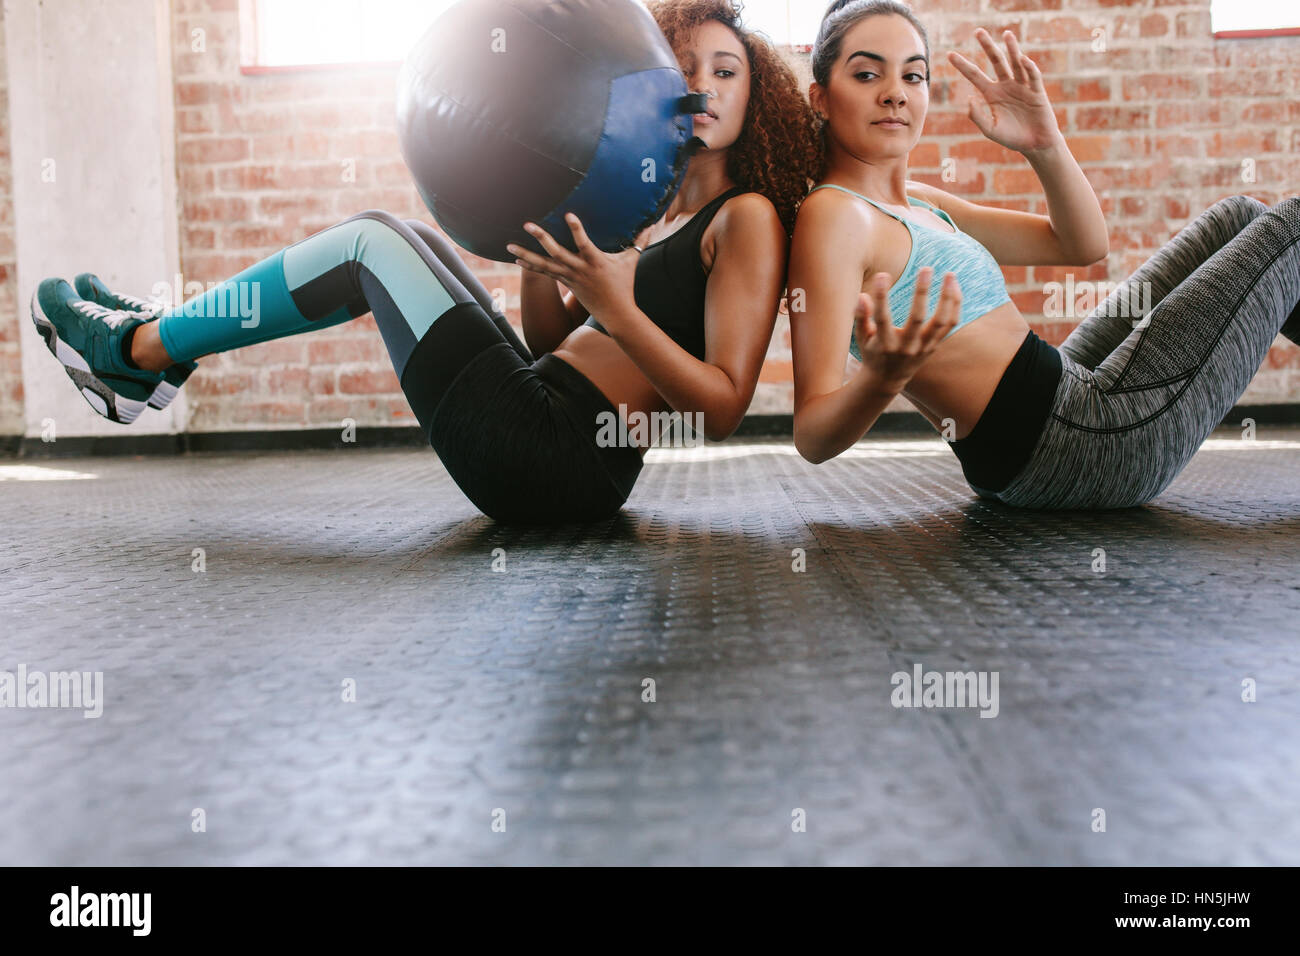 Two sporty women training with medicine ball in gym. Girls working out to shape their body. - Stock Image